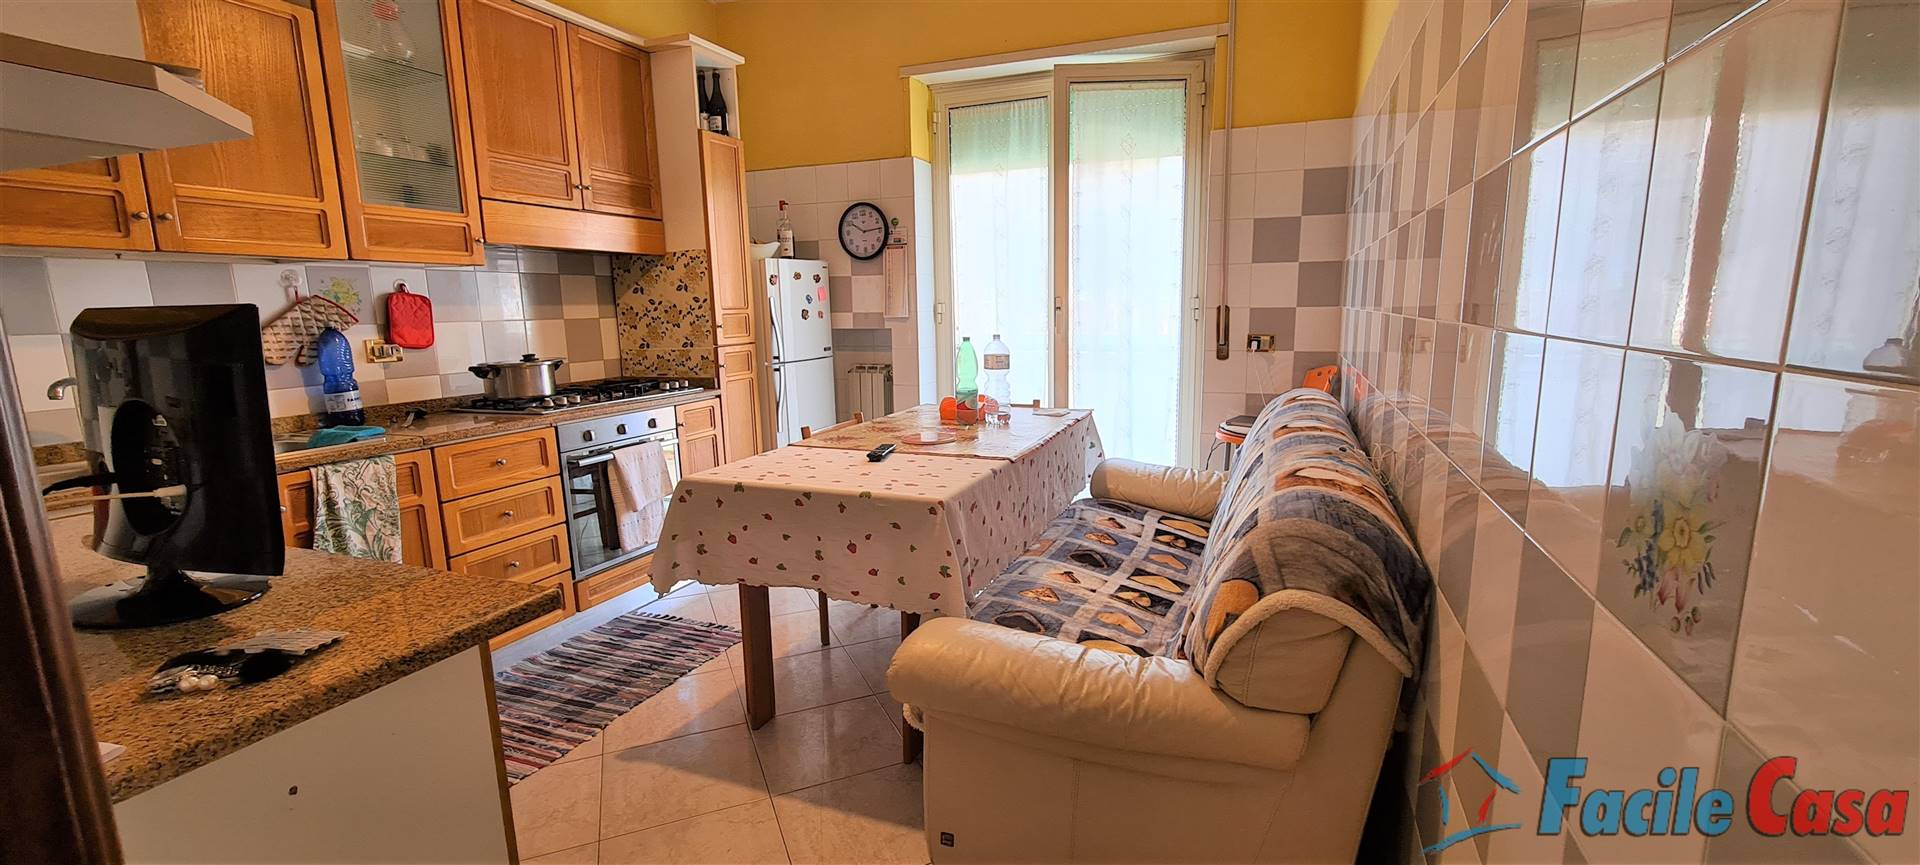 FORMIA, Apartment for sale of 112 Sq. mt., Good condition, Heating Individual heating system, Energetic class: G, placed at 2° on 3, composed by: 3